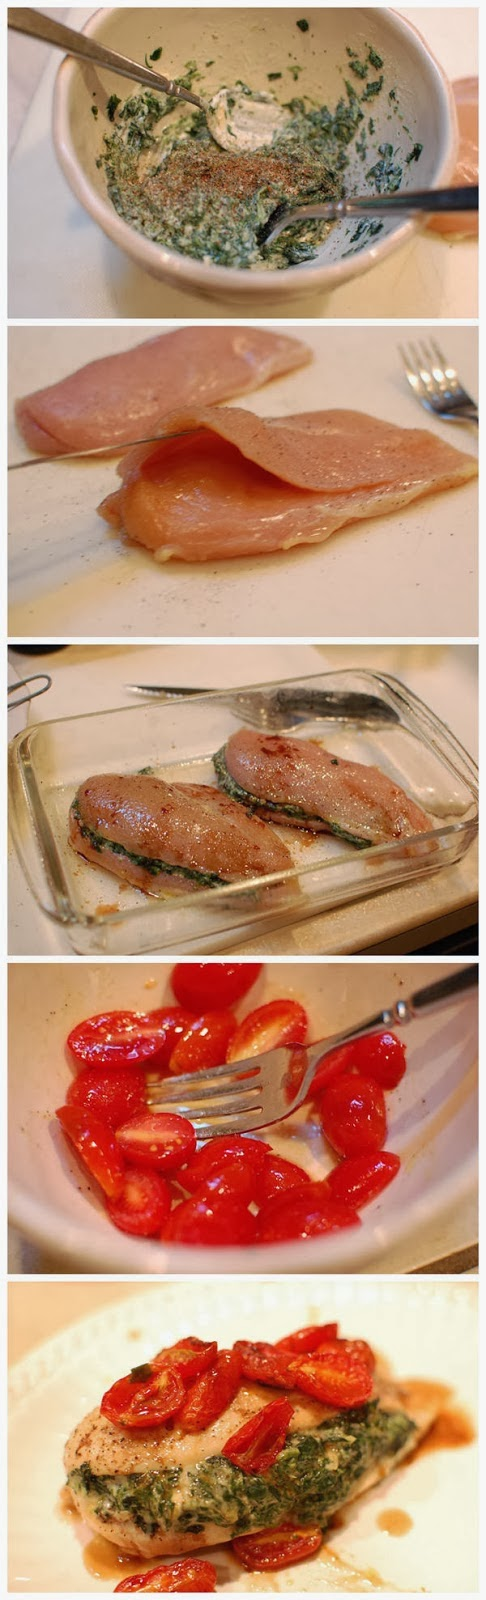 Spinach-Stuffed-Chicken-with-Blistered-Tomatoes-Recipe